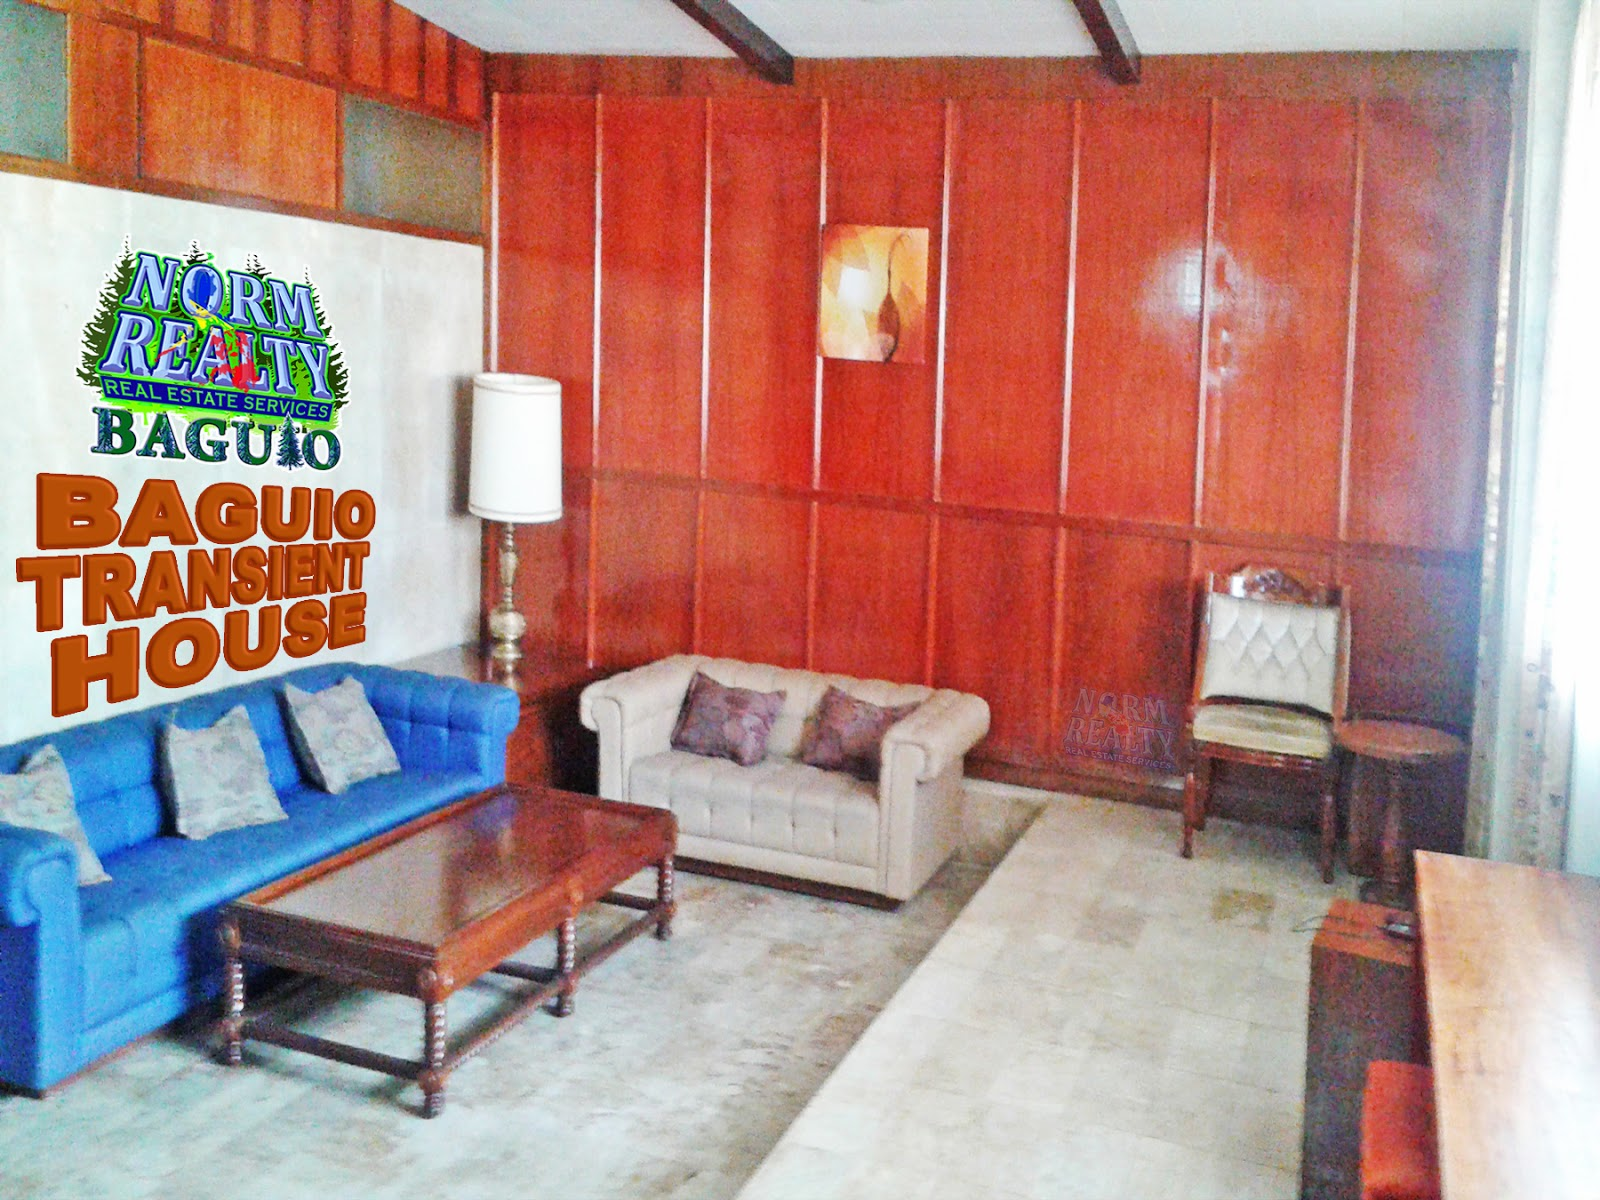 BAGUIO PROPERTIES by AshleyNormRealty Baguio House for